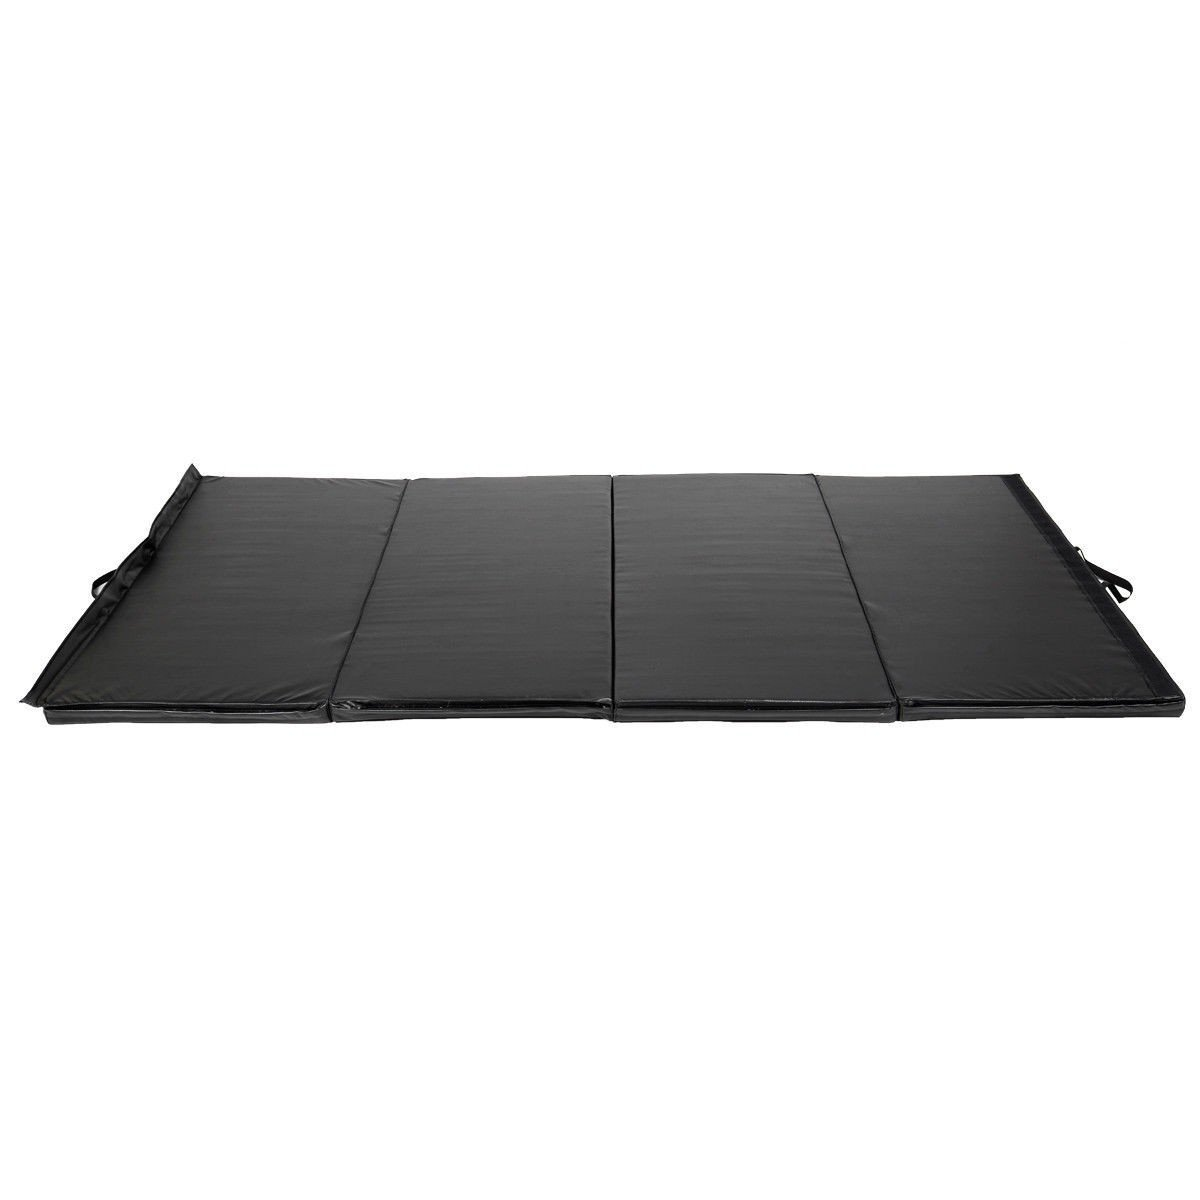 smooth ft blue mats flooring vinyl p folding x gymnastics greatmats in cover mat oz and foam gym